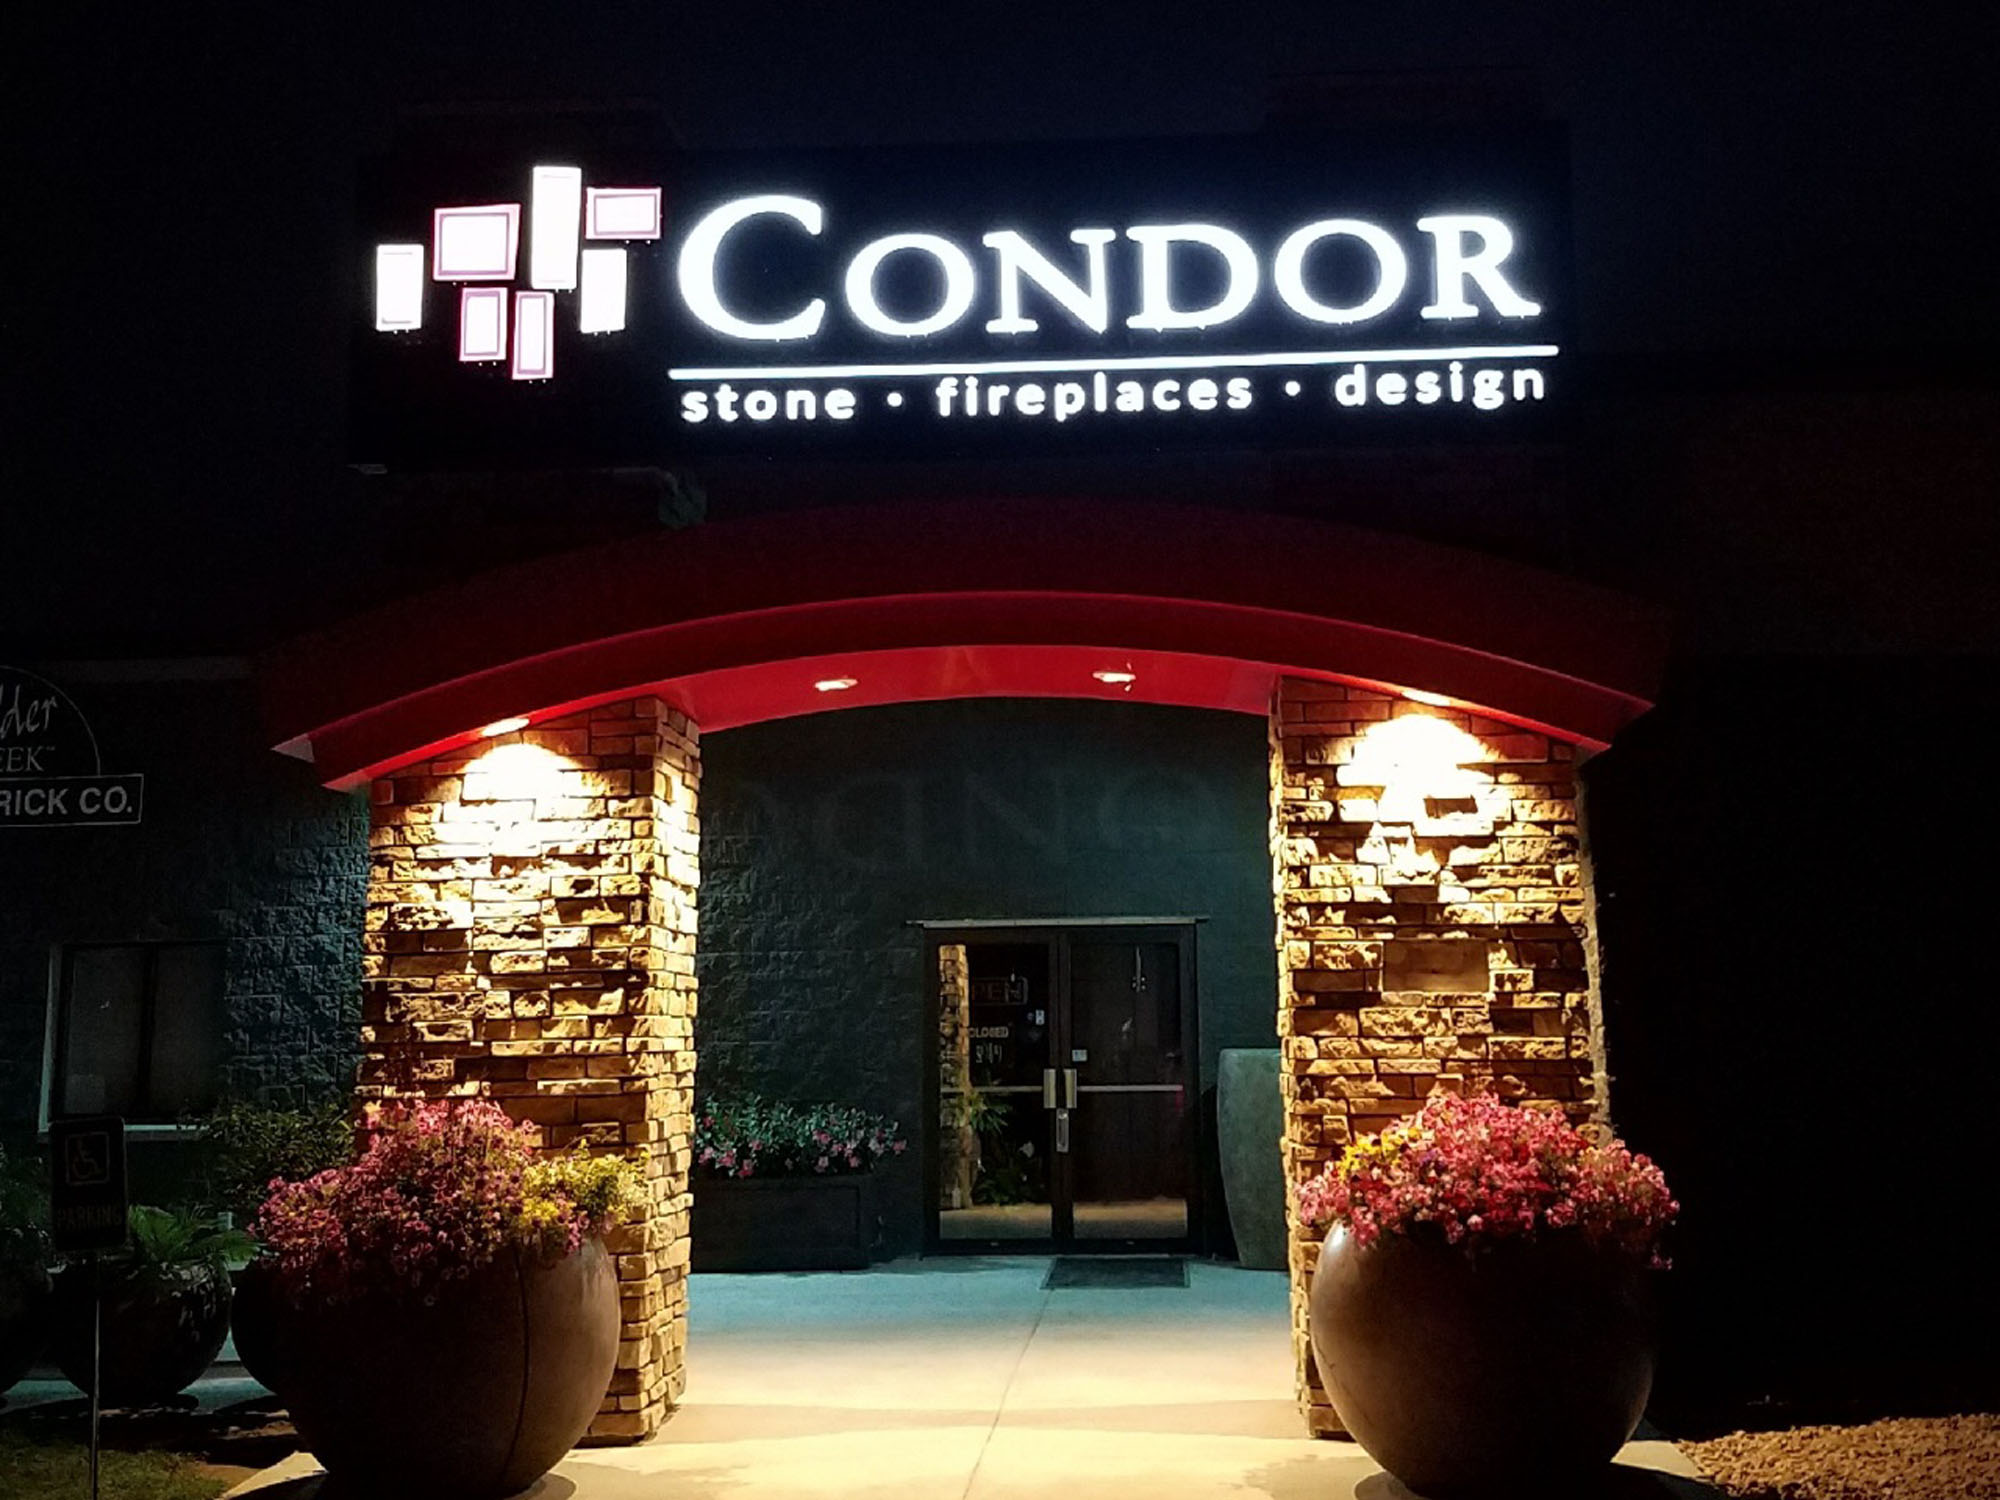 CondorNight LED Sign by DeMars Signs